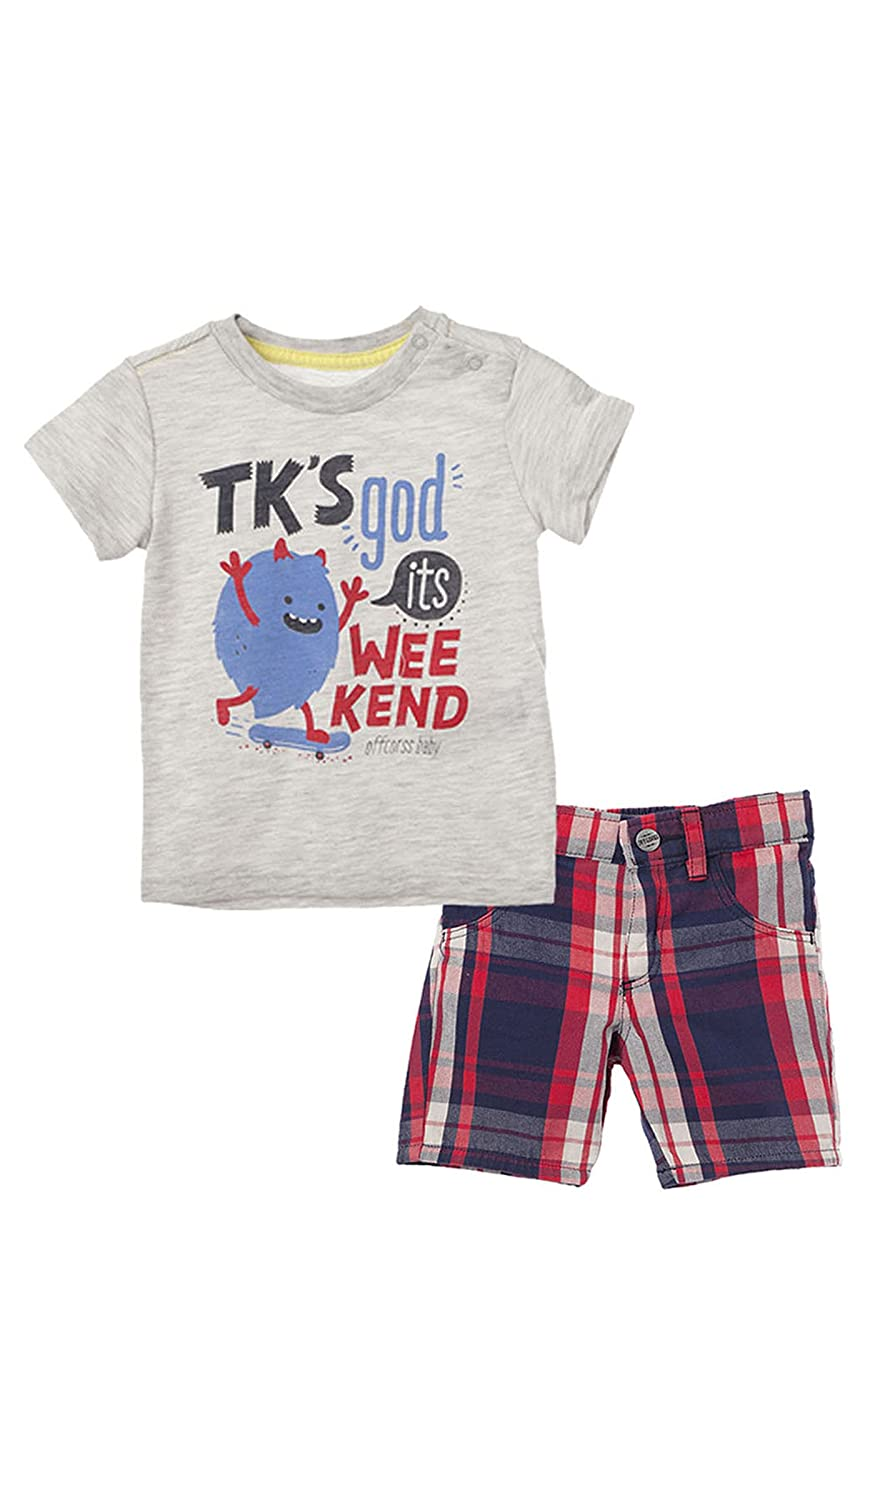 Amazon.com: OFFCORSS Baby Boys Outfits Set T-Shirt Shorts Conjuntos Ropa Bebe Varon Niño: Clothing